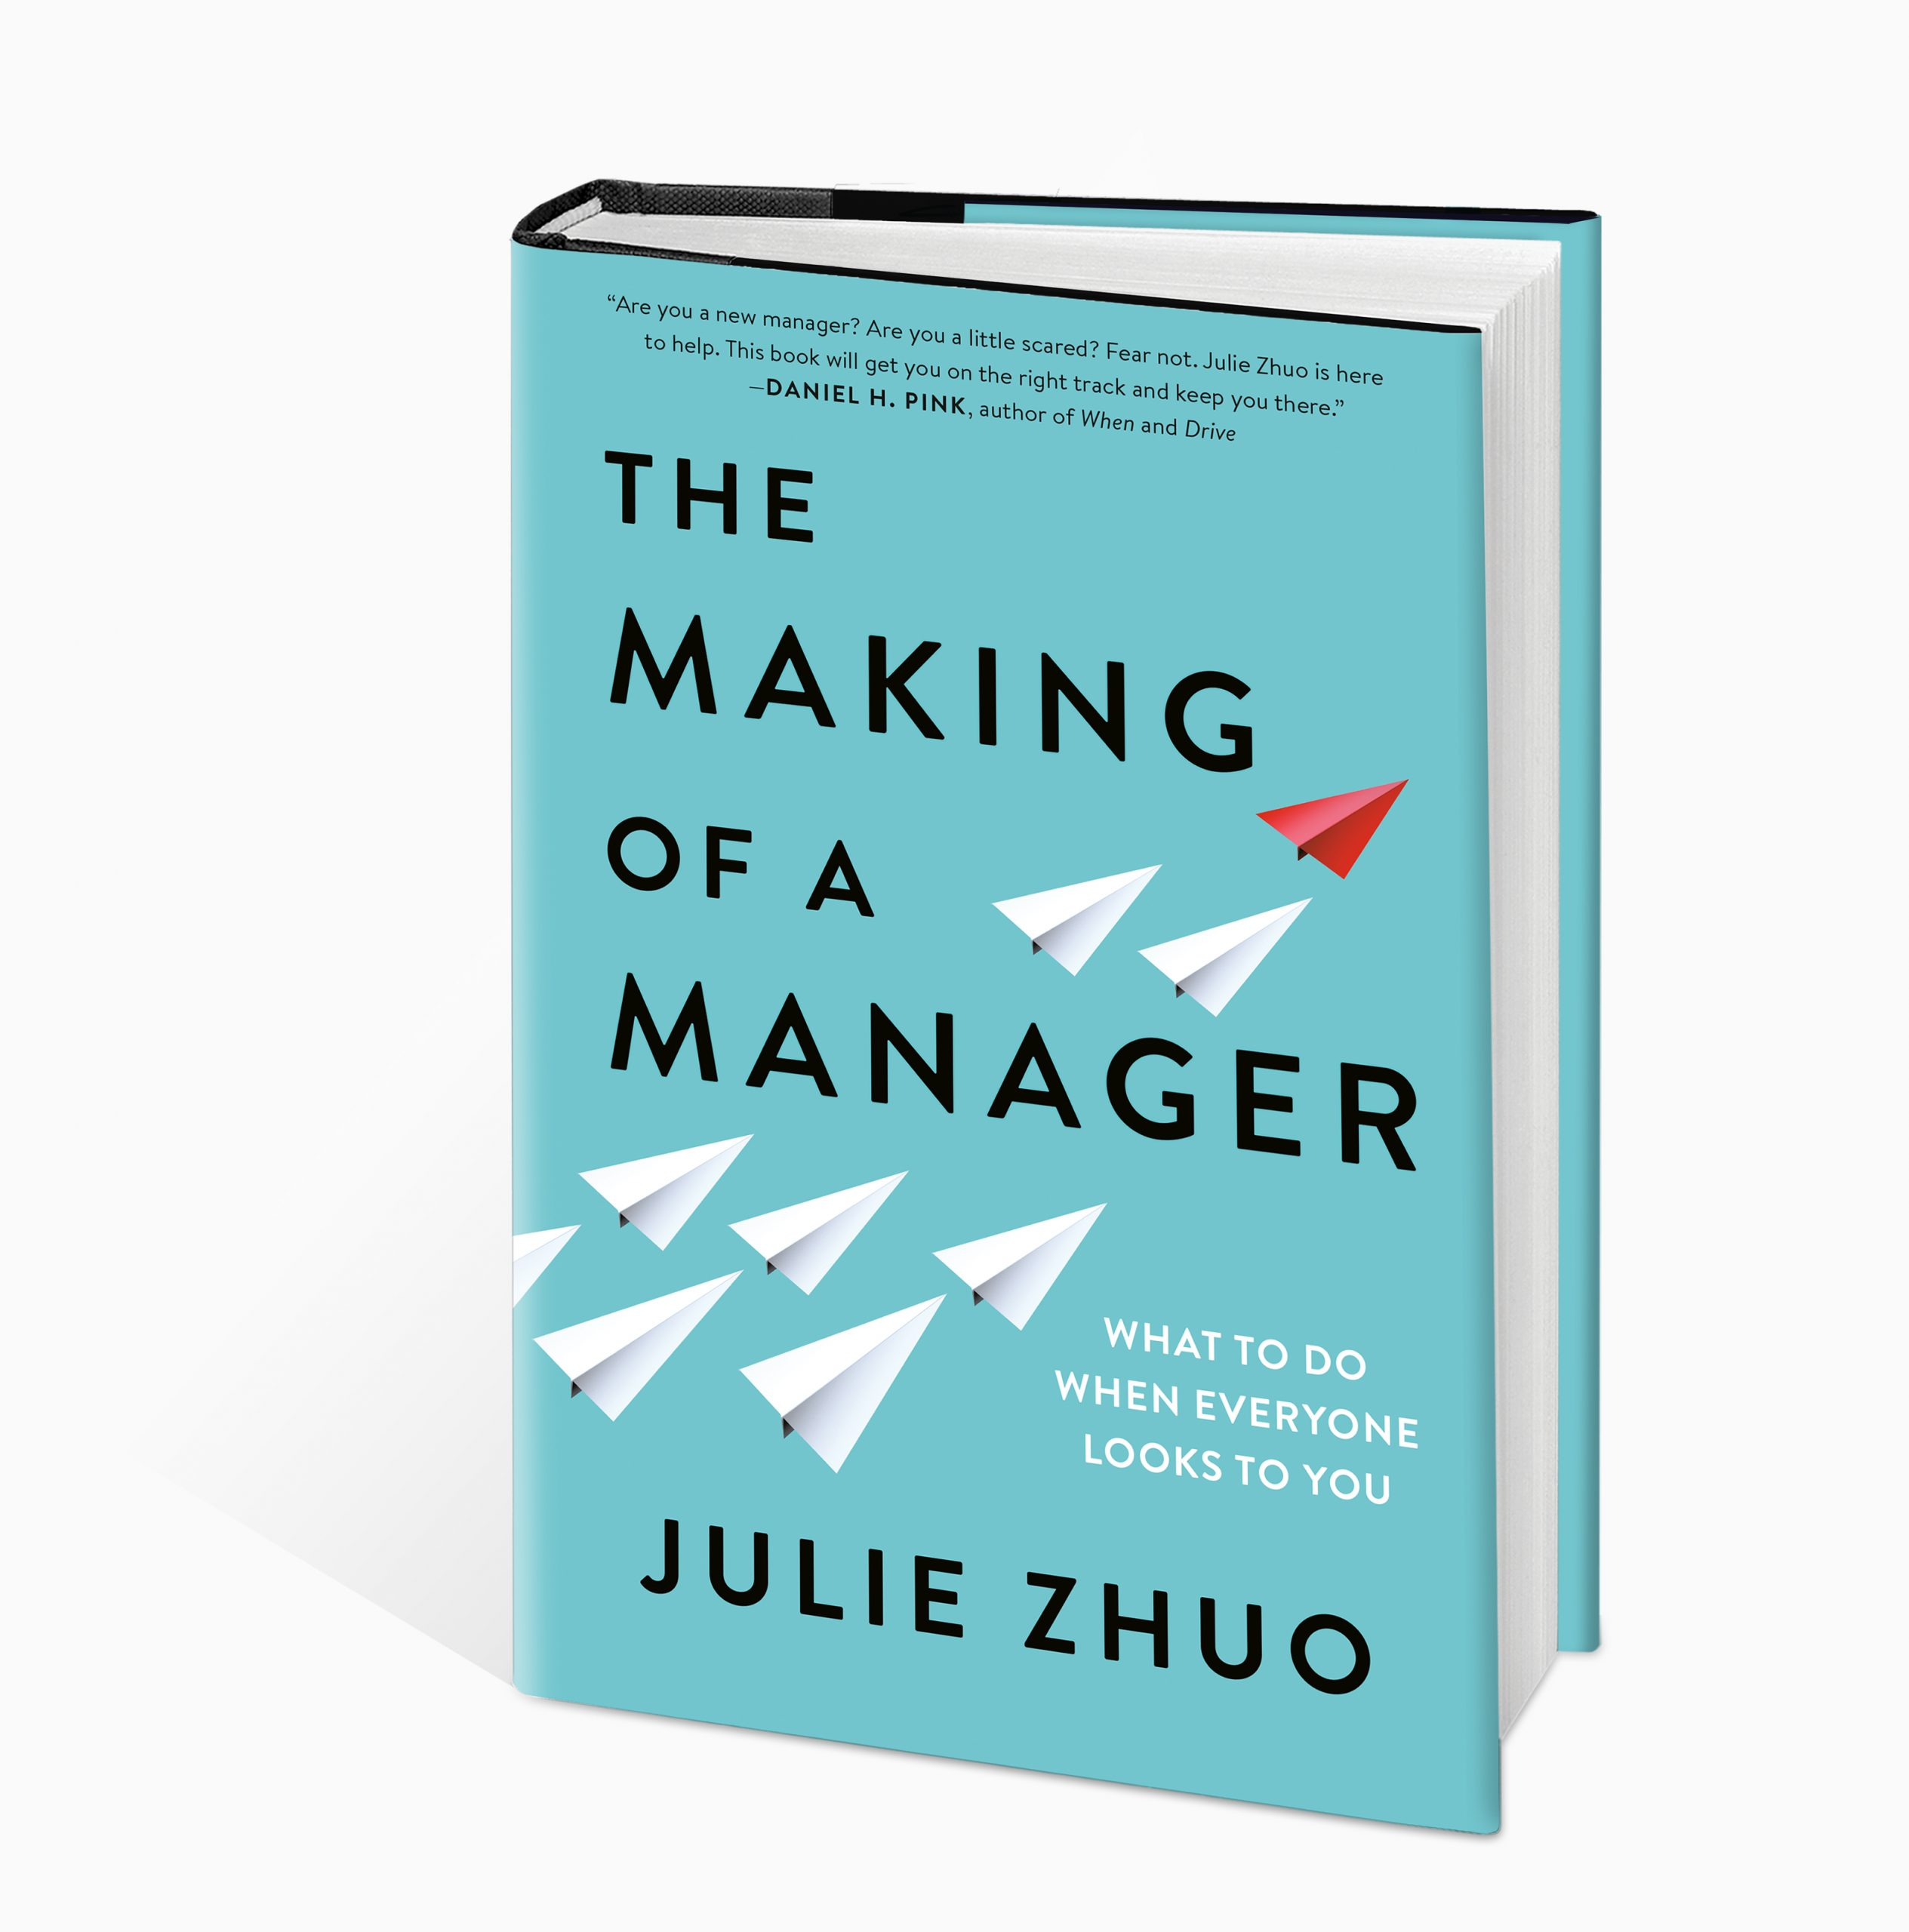 The making of manager - Julie Zhuo